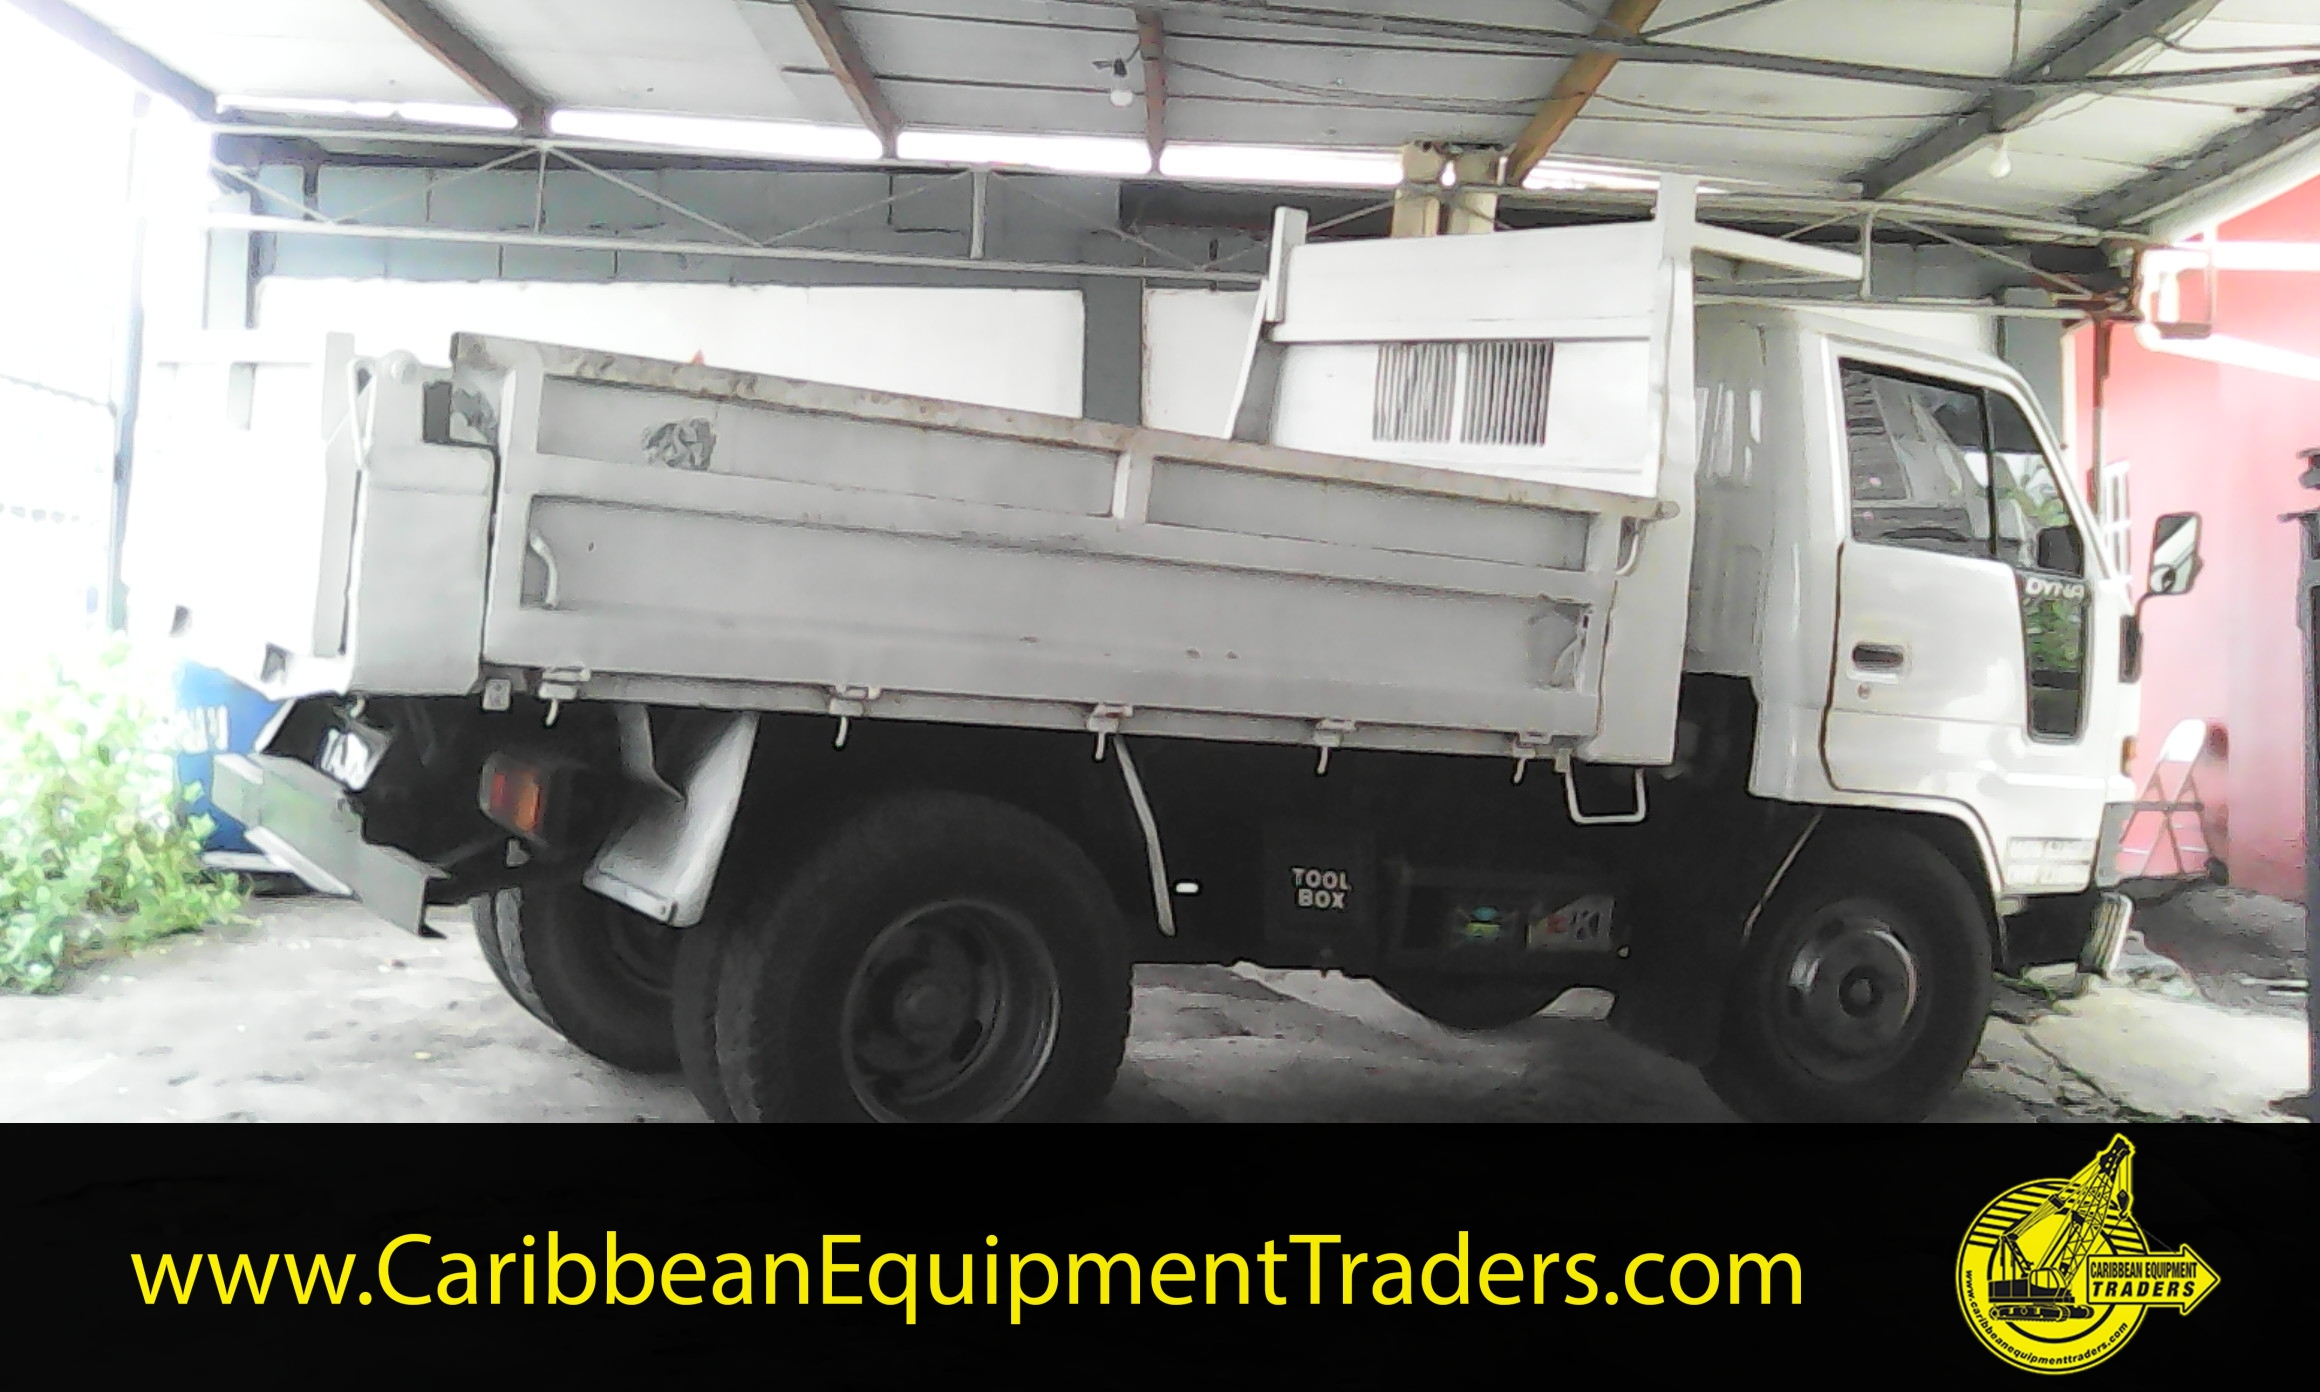 Dump Truck Cable Control Tower : Toyota dyna dump truck ton caribbean equipment